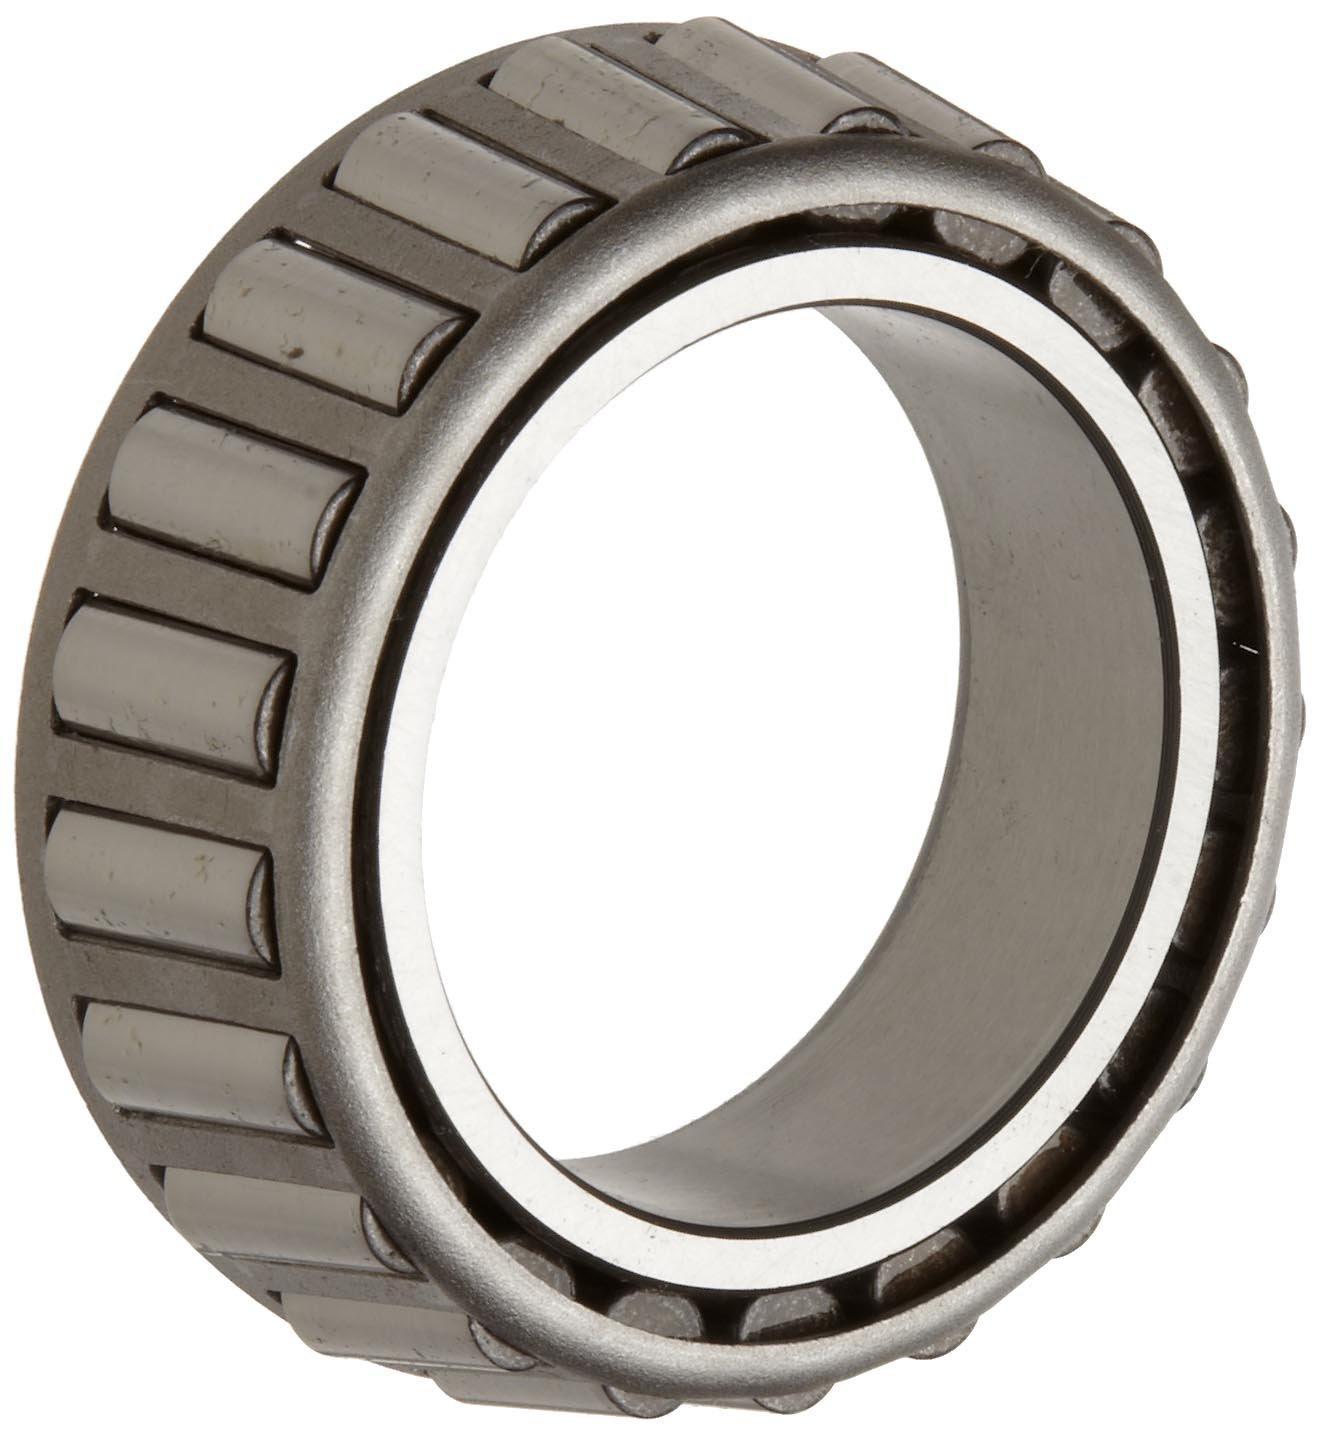 Precision Gear JLM104948 Bearing Component